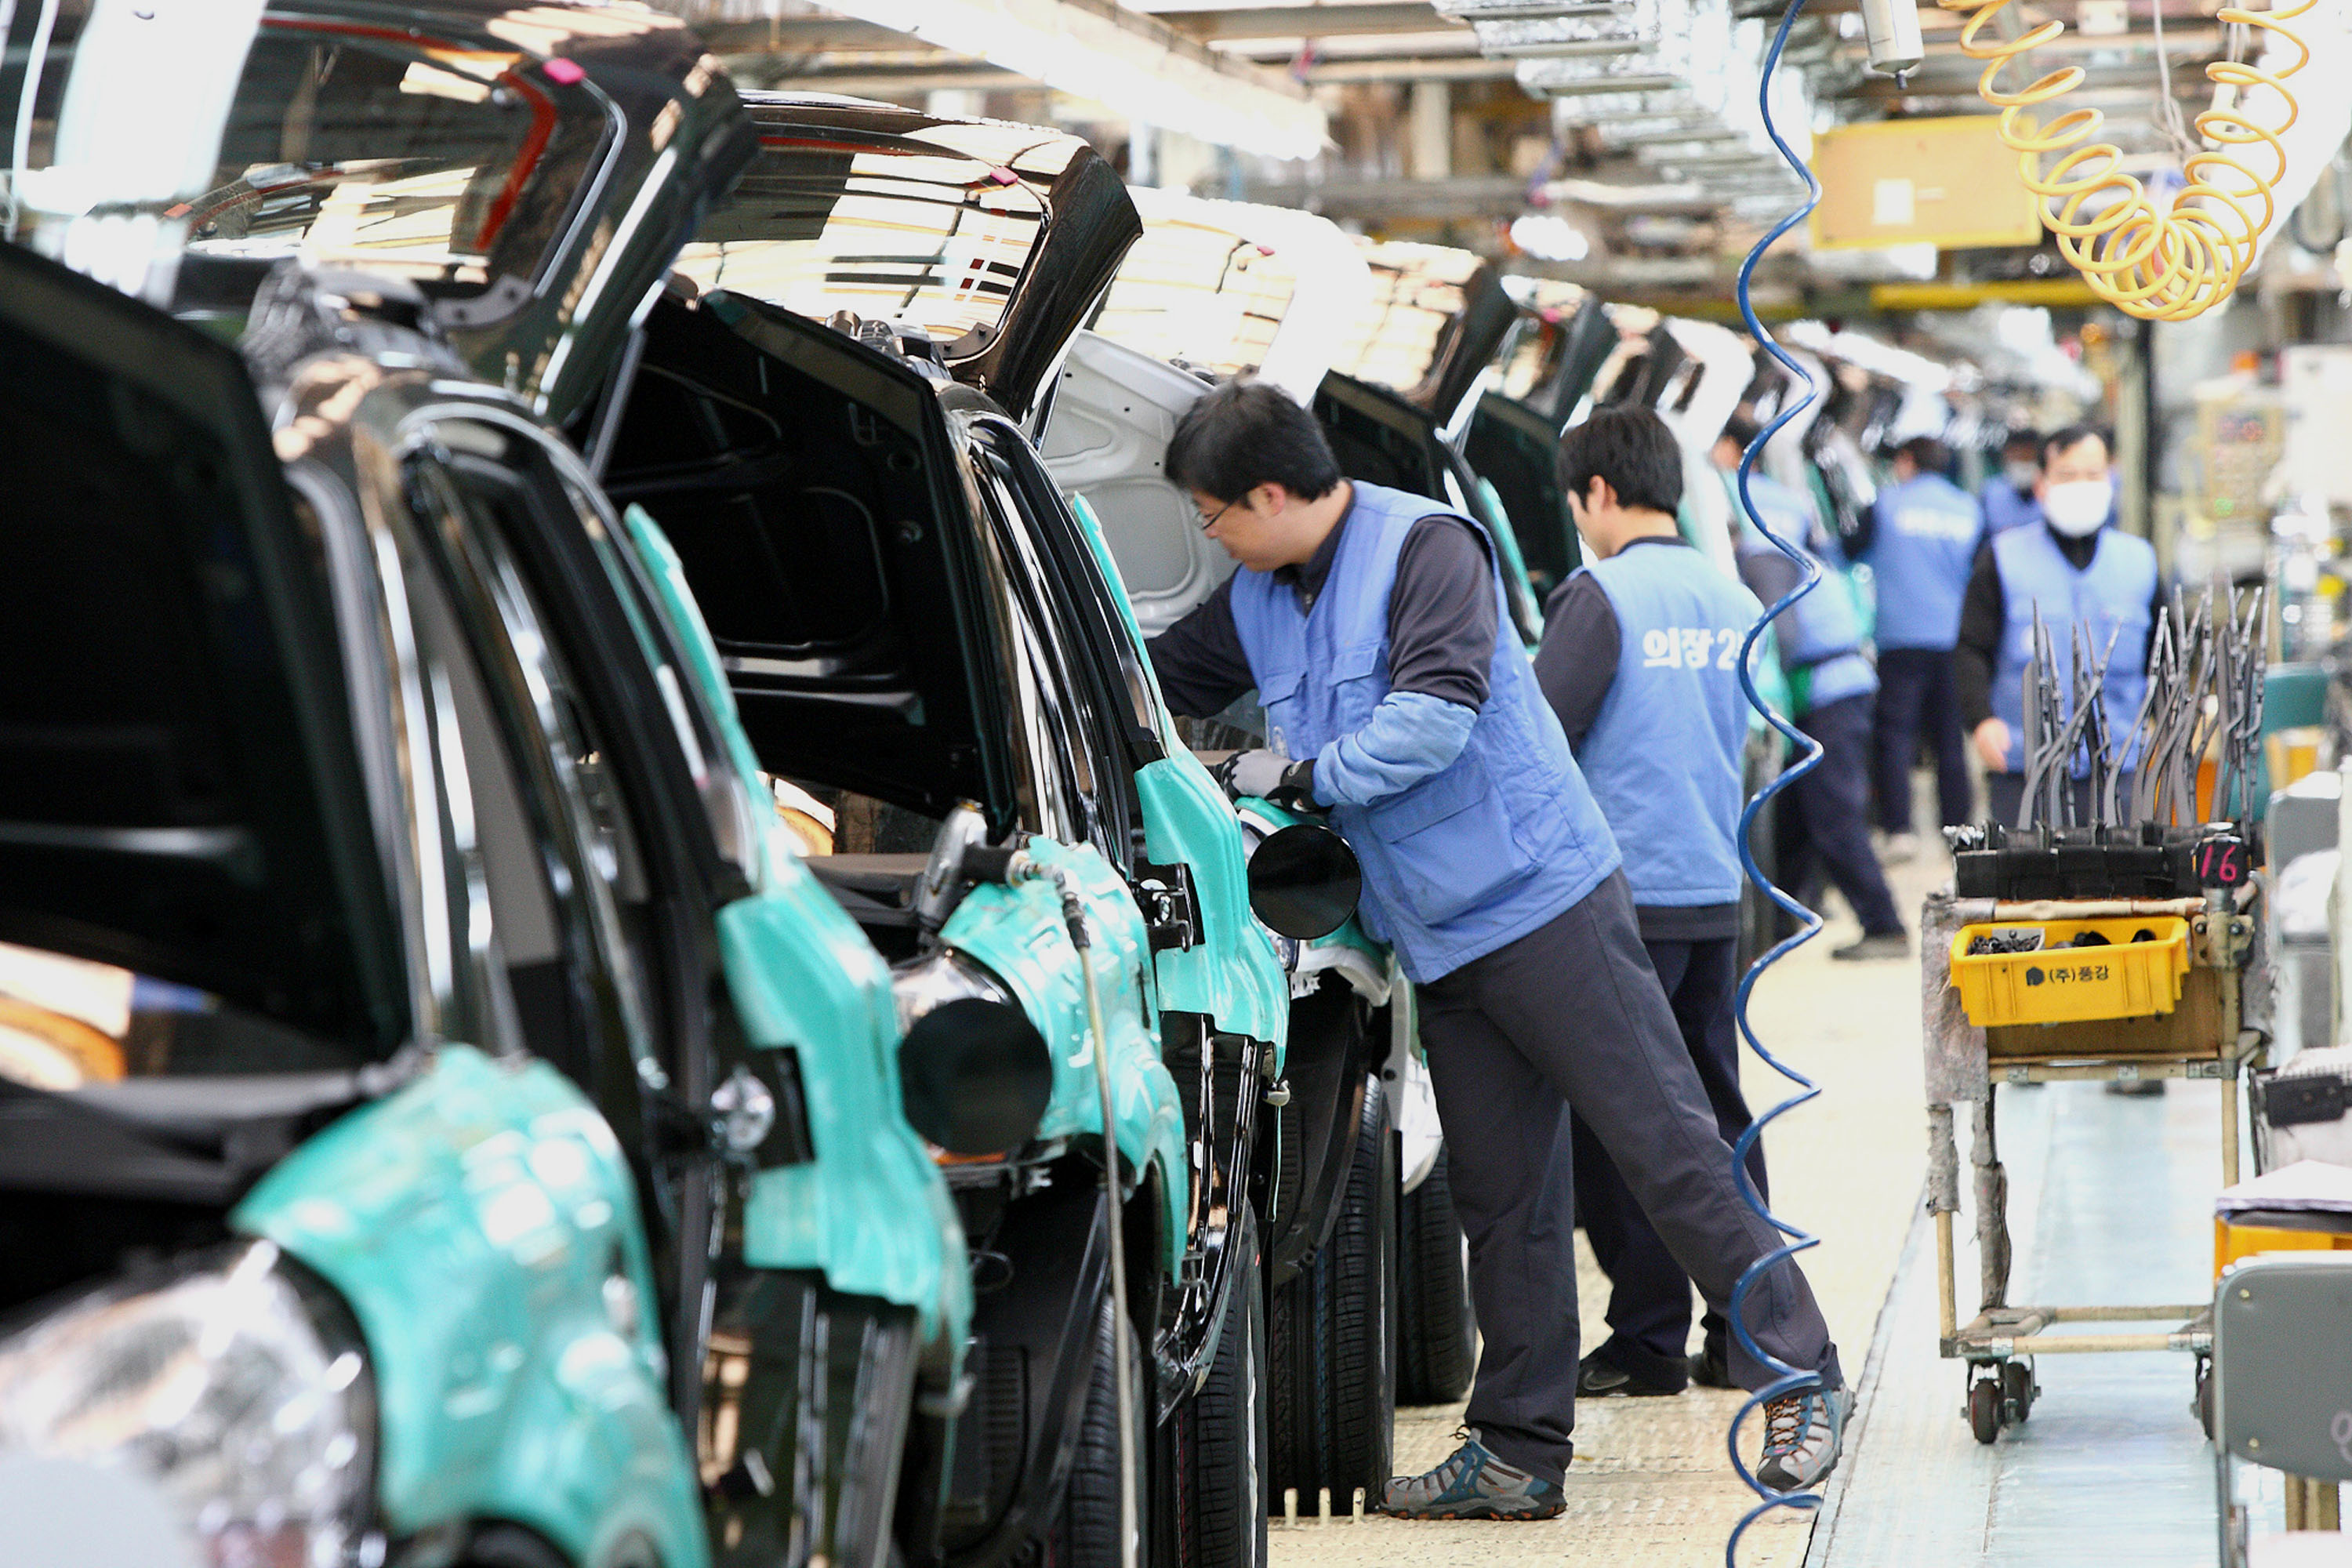 In this 2009 photo, workers work on an assembly line at Hyundai Motor Co. plant in Ulsan, south of Seoul, South Korea. The Hyundai Motor Company is suspending production lines at its plants in South Korea, after its supply of parts was disrupted because of the coronavirus outbreak in China.